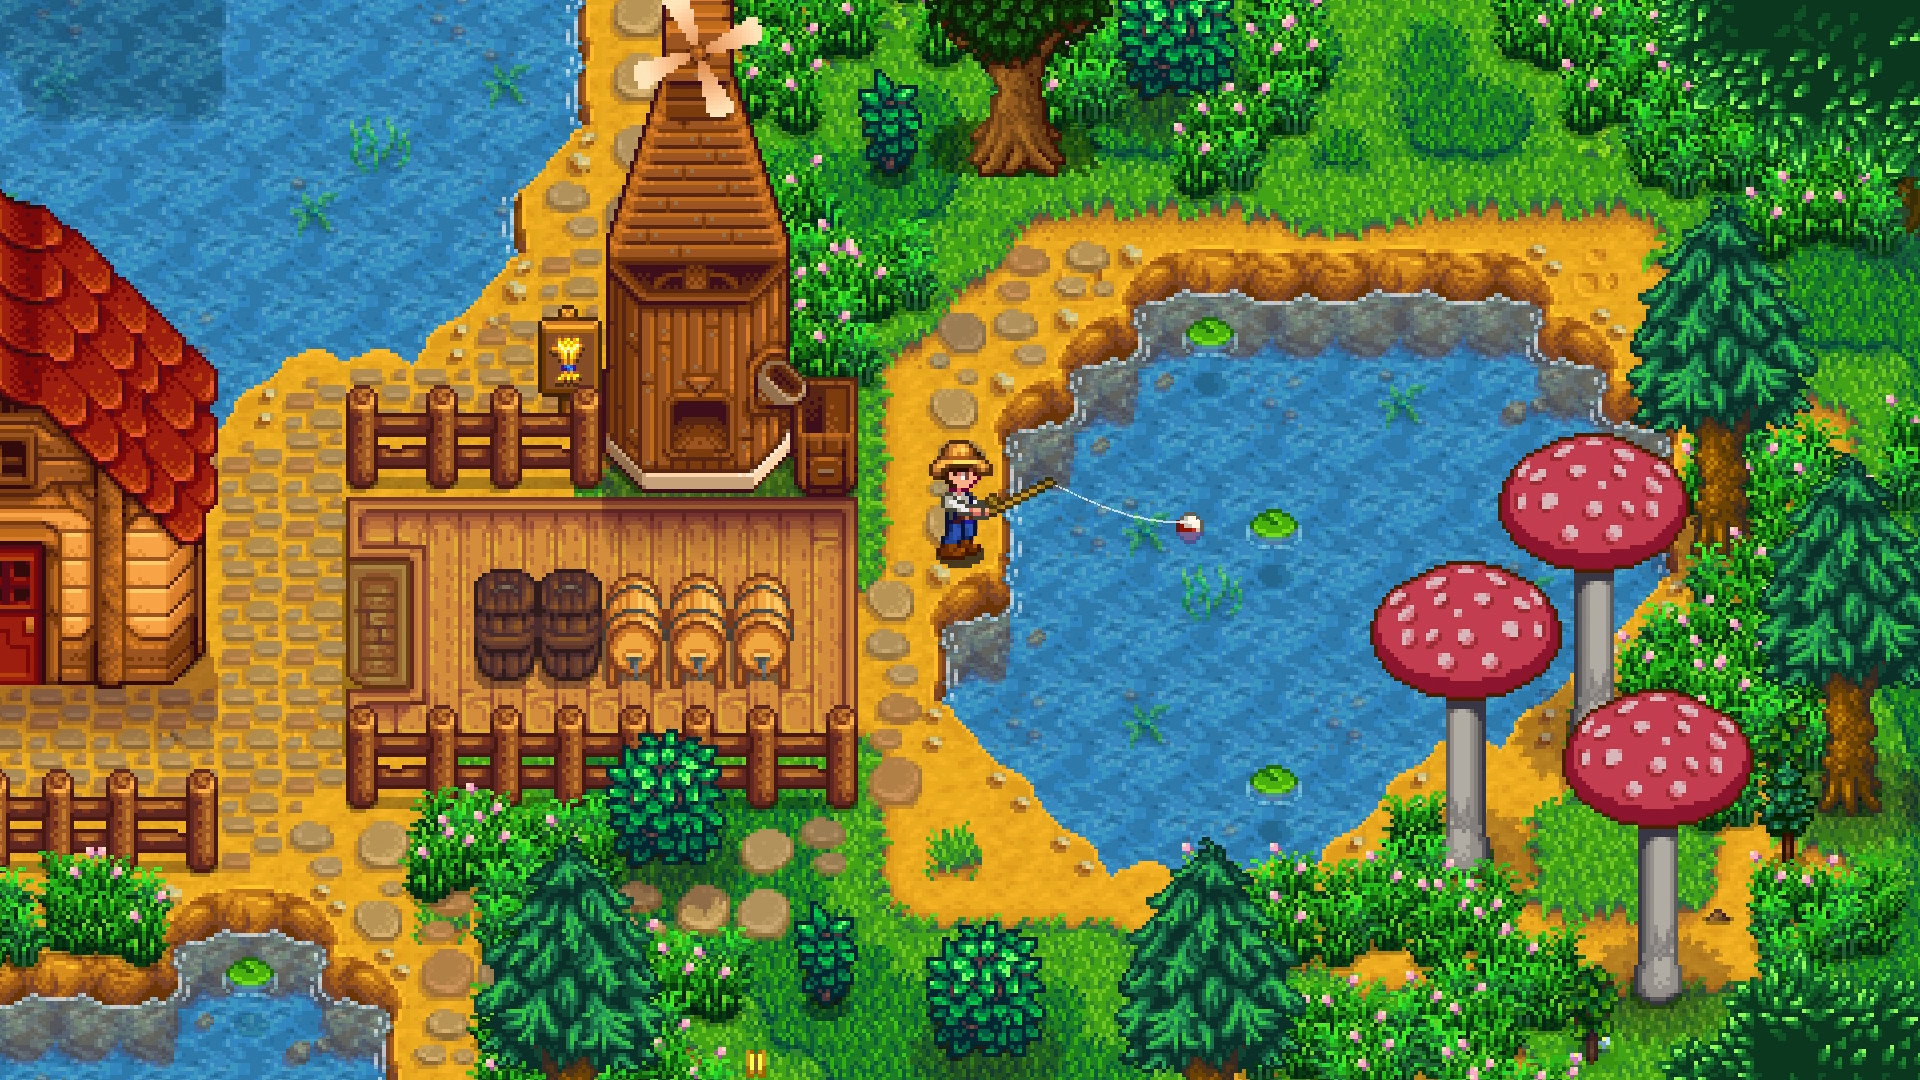 """This Stardew Valley mod aims to recapture the """"magical"""